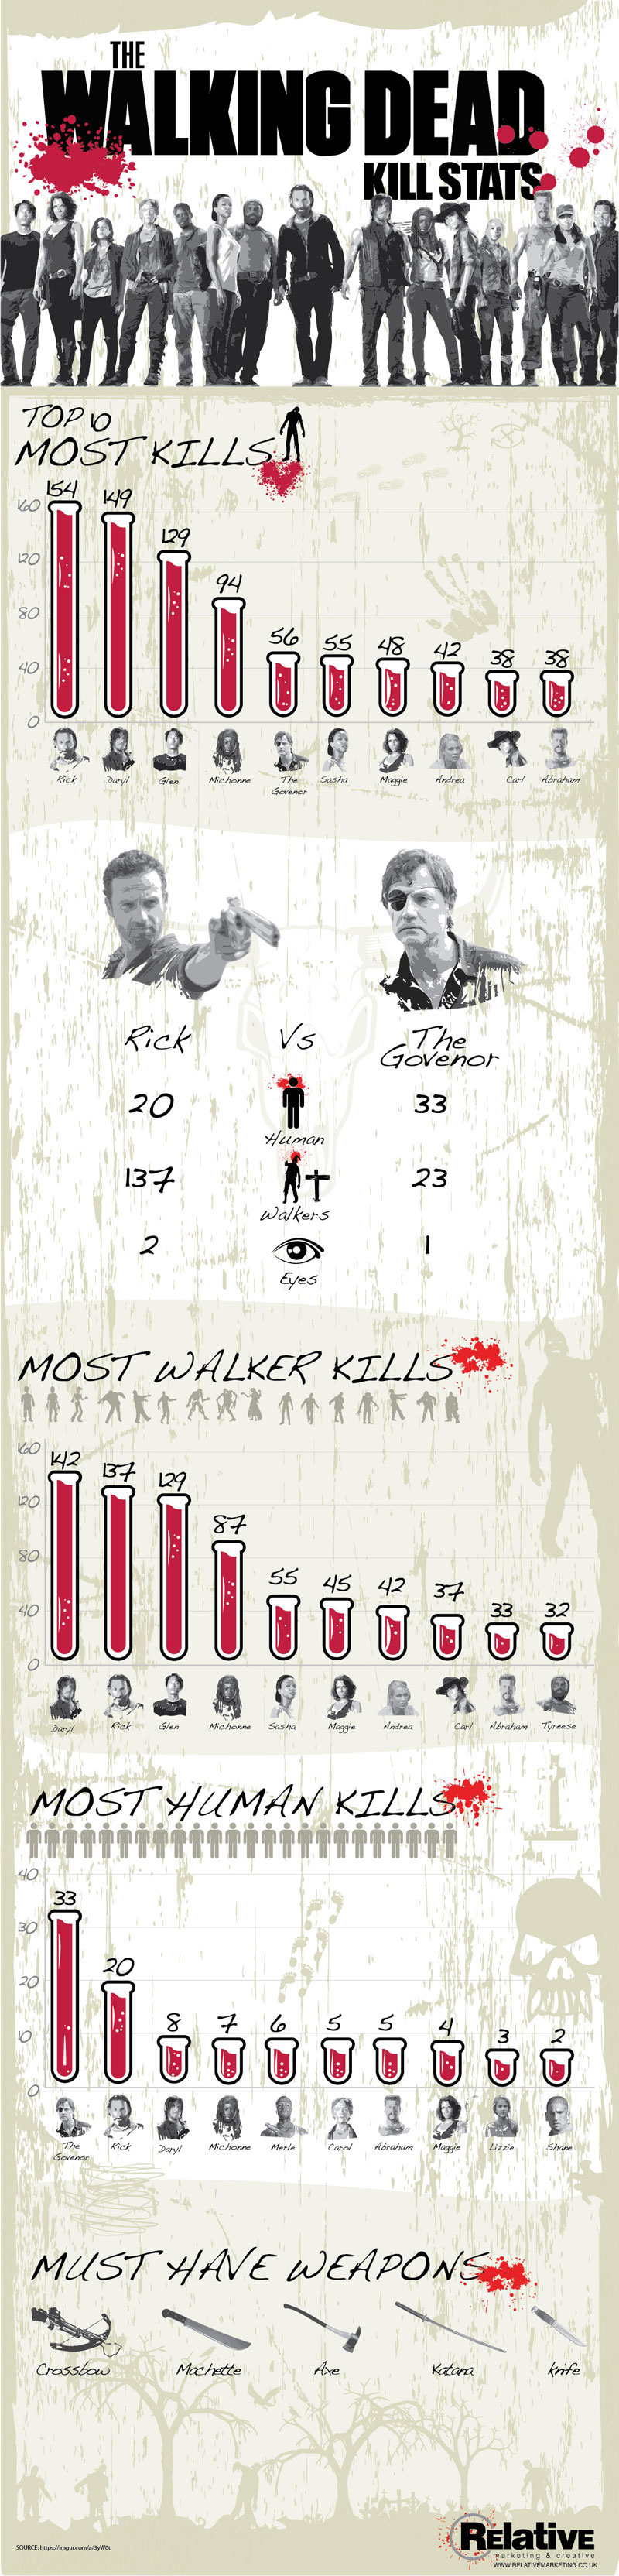 Walking Dead Infographic 2015 - An Infographic from Relative Marketing & Creative